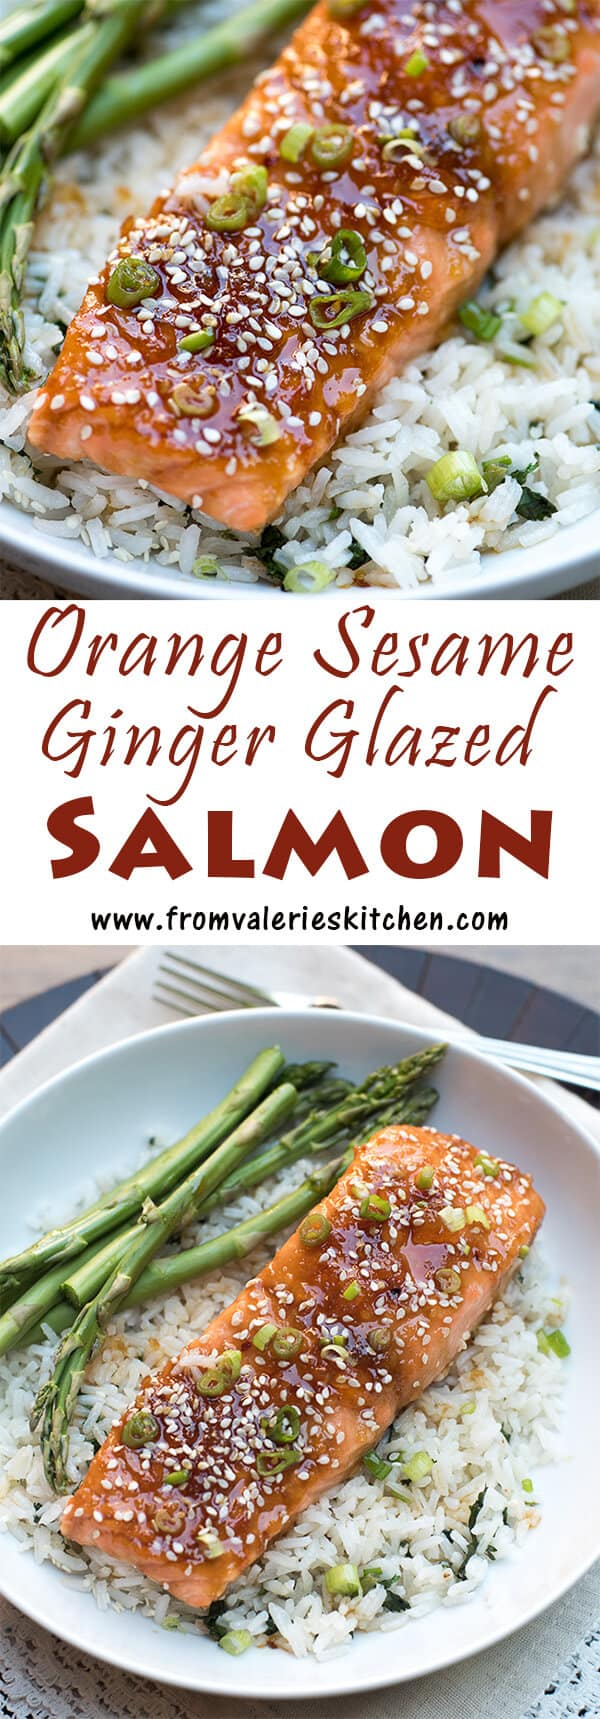 Orange Sesame Ginger Glazed Salmon | Valerie's Kitchen